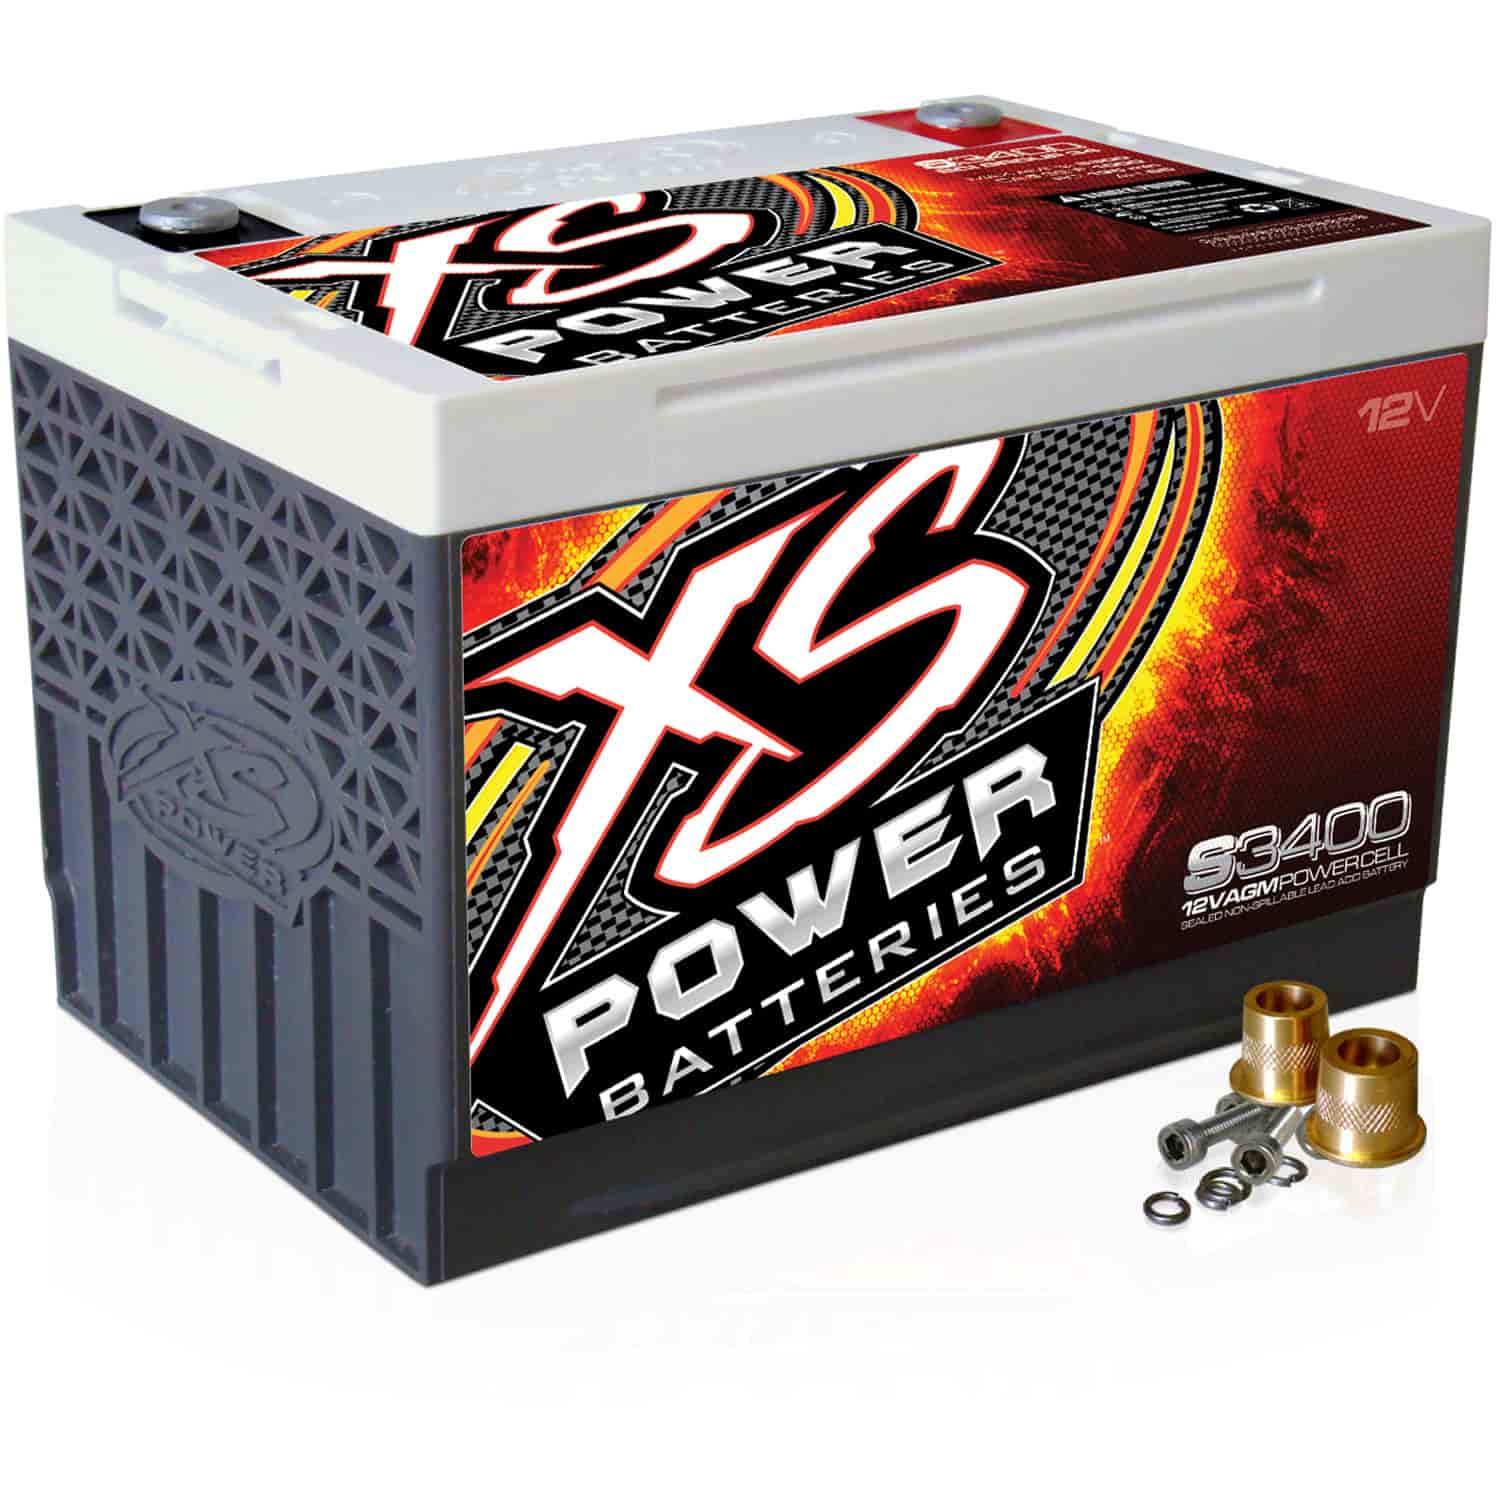 XS Power S3400 - XS Power Batteries